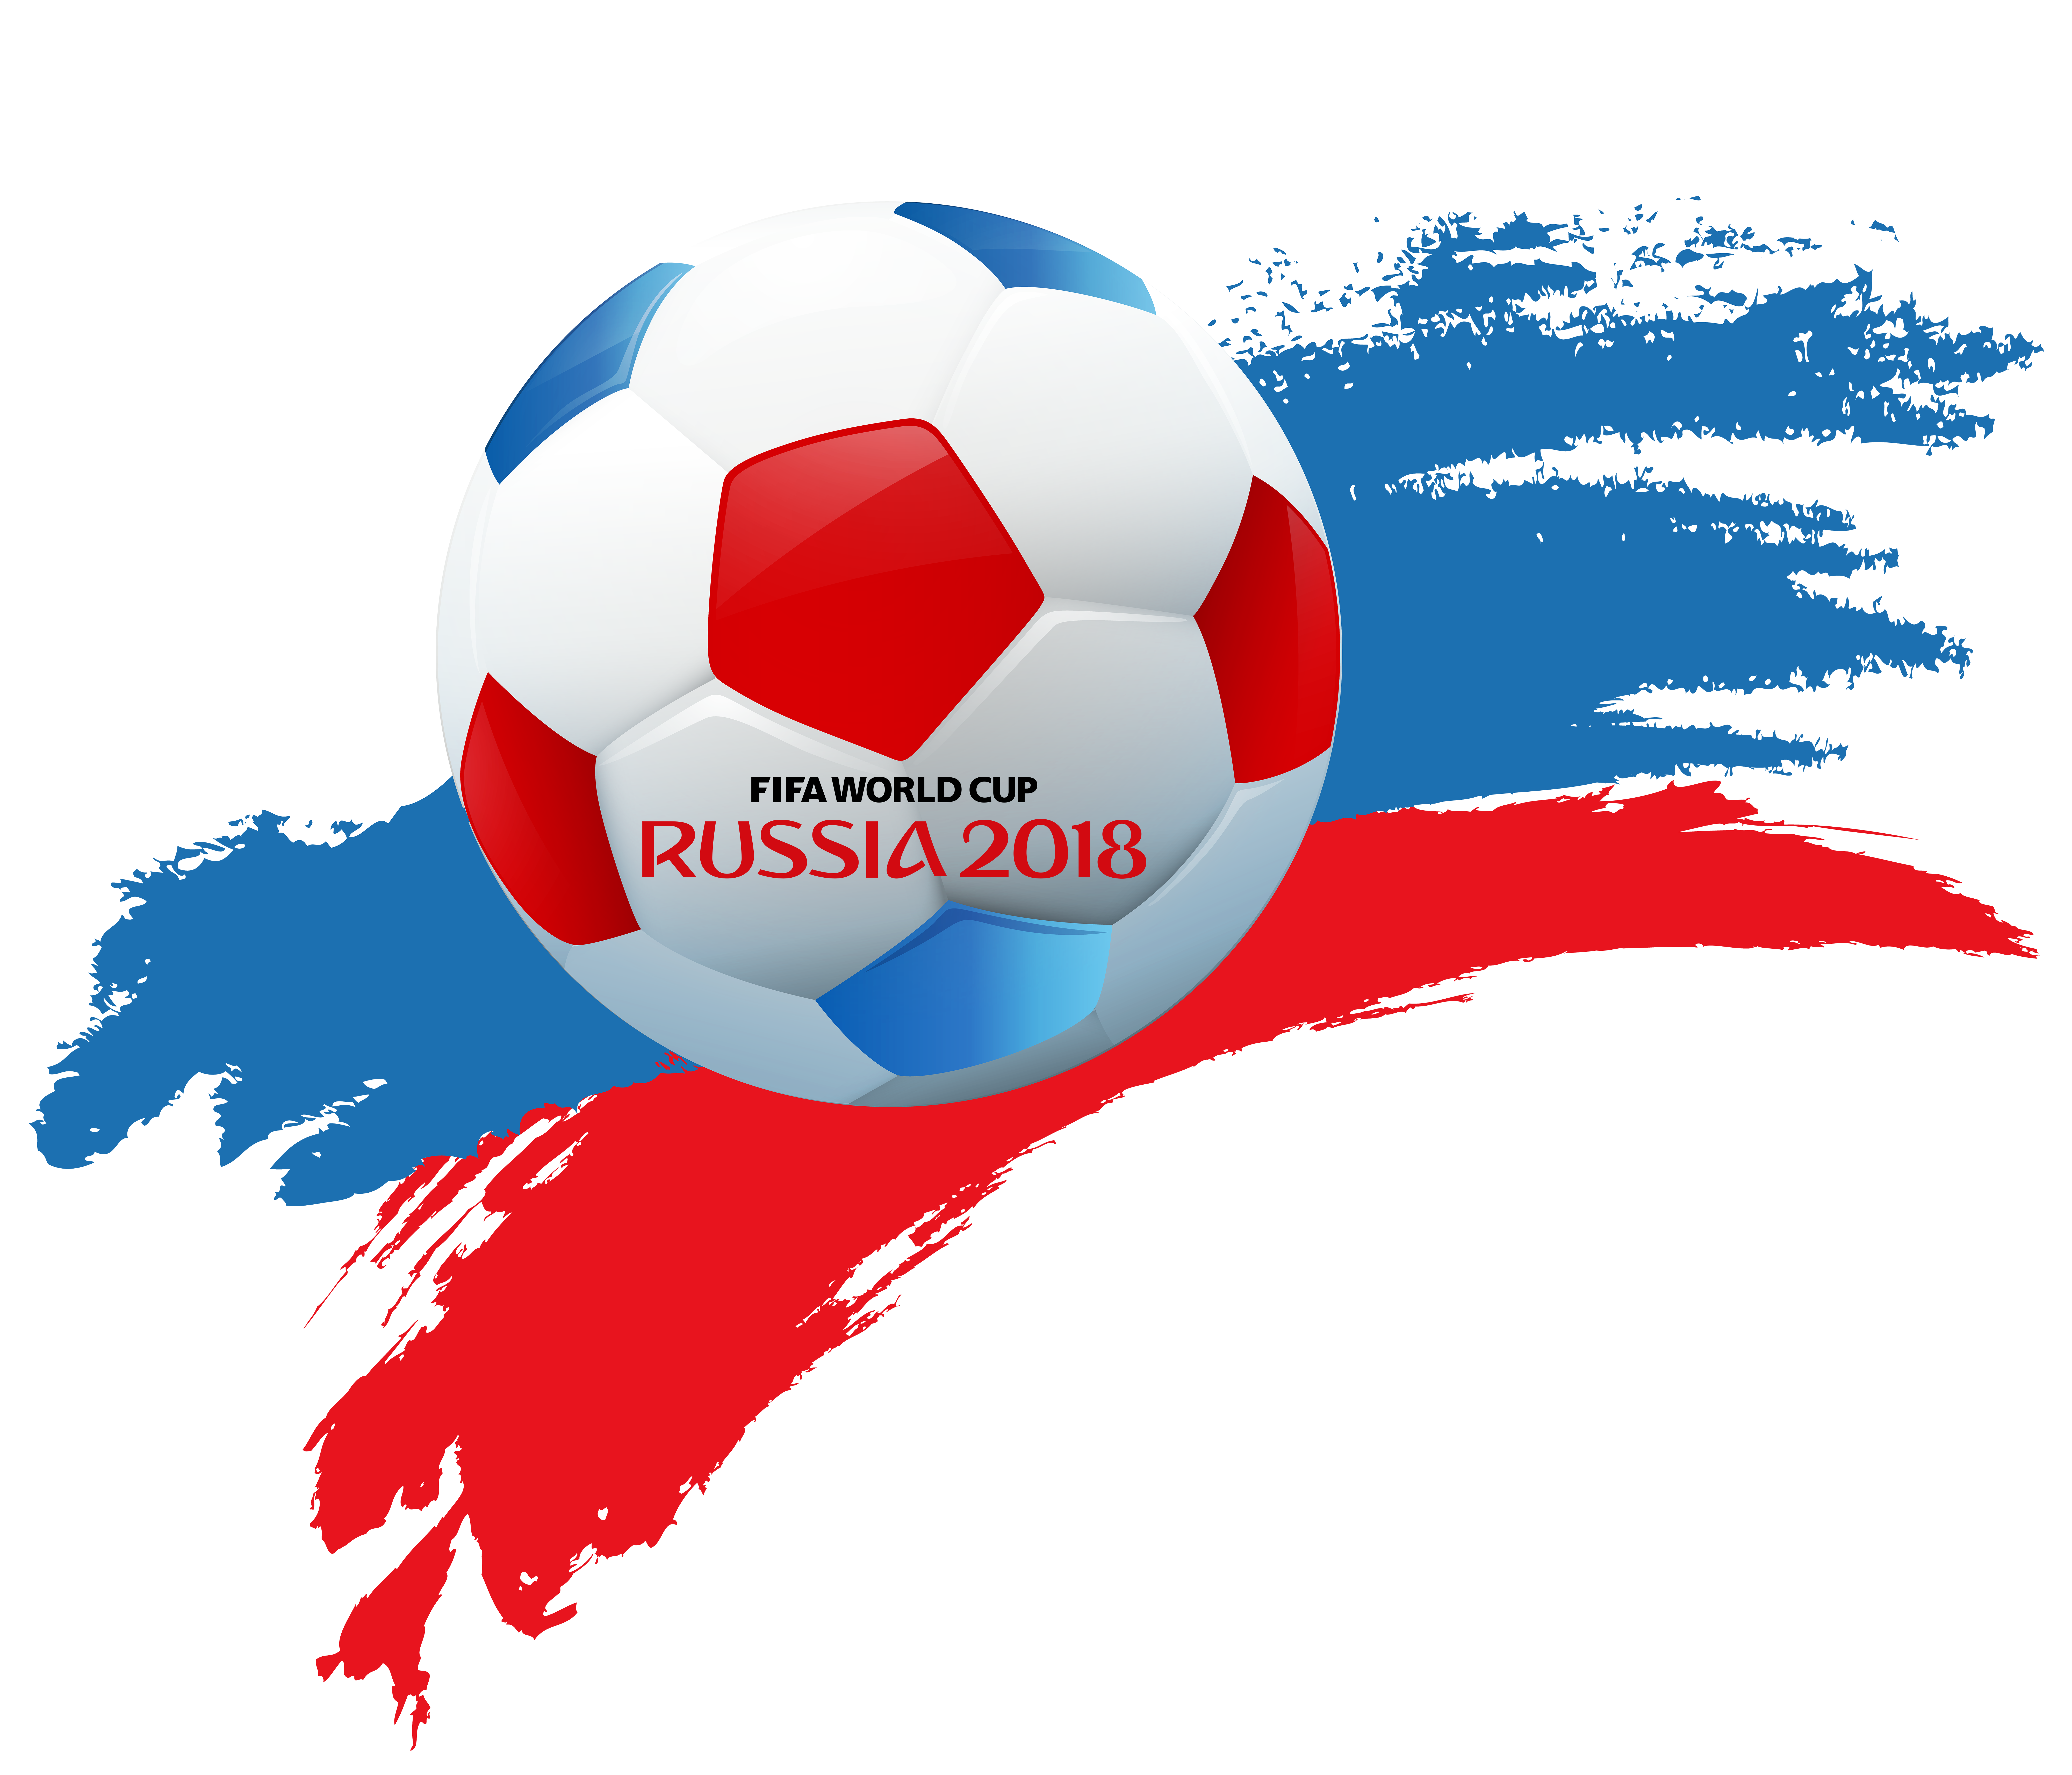 2018 clipart world cup. Russia png clip art